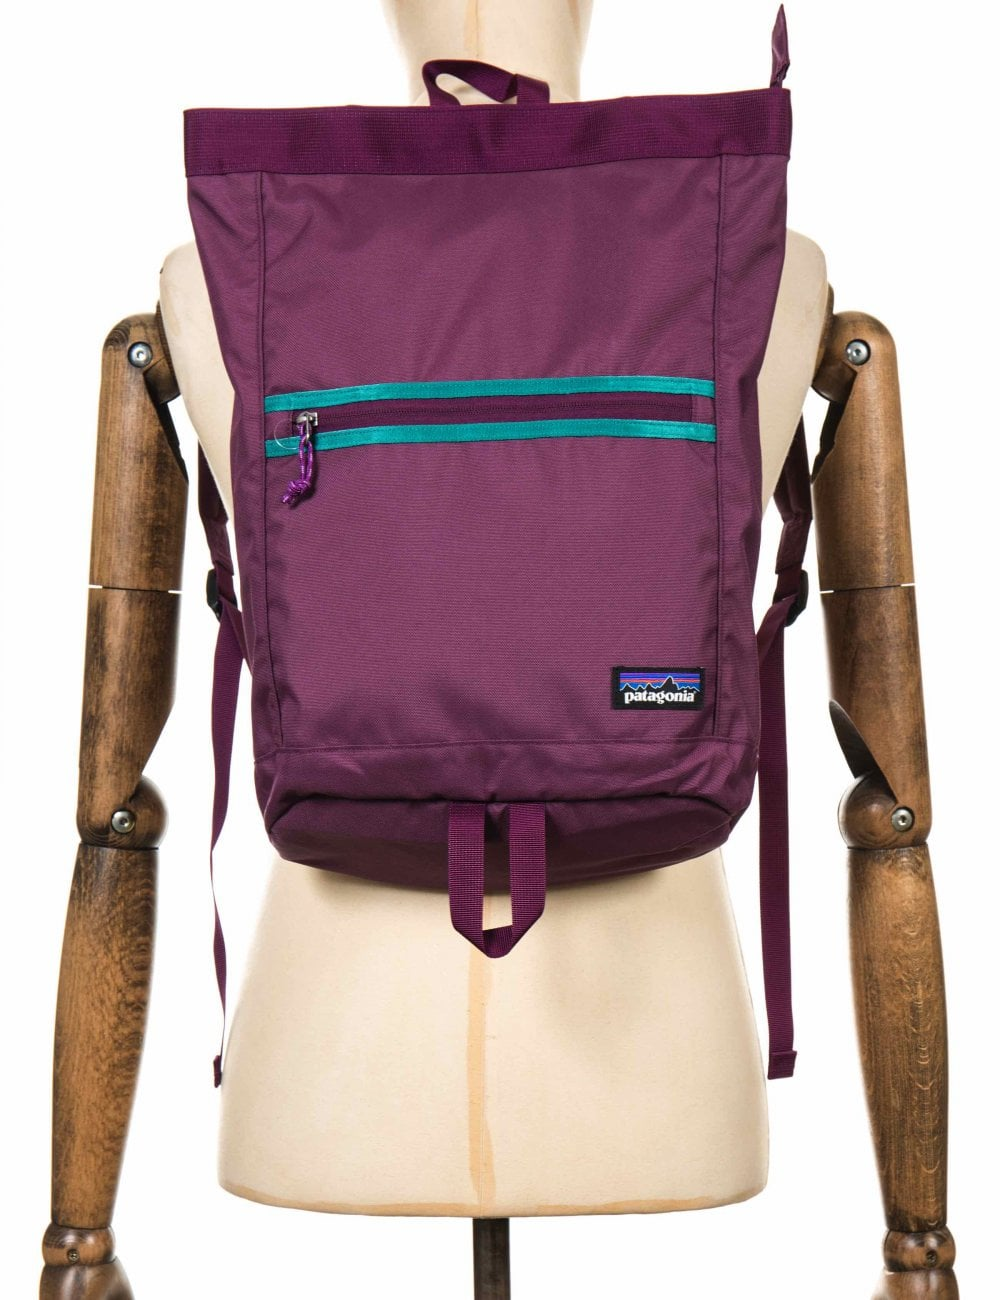 08bf7a4f01010 Patagonia Arbor Market Backpack 15L - Geode Purple - Accessories ...